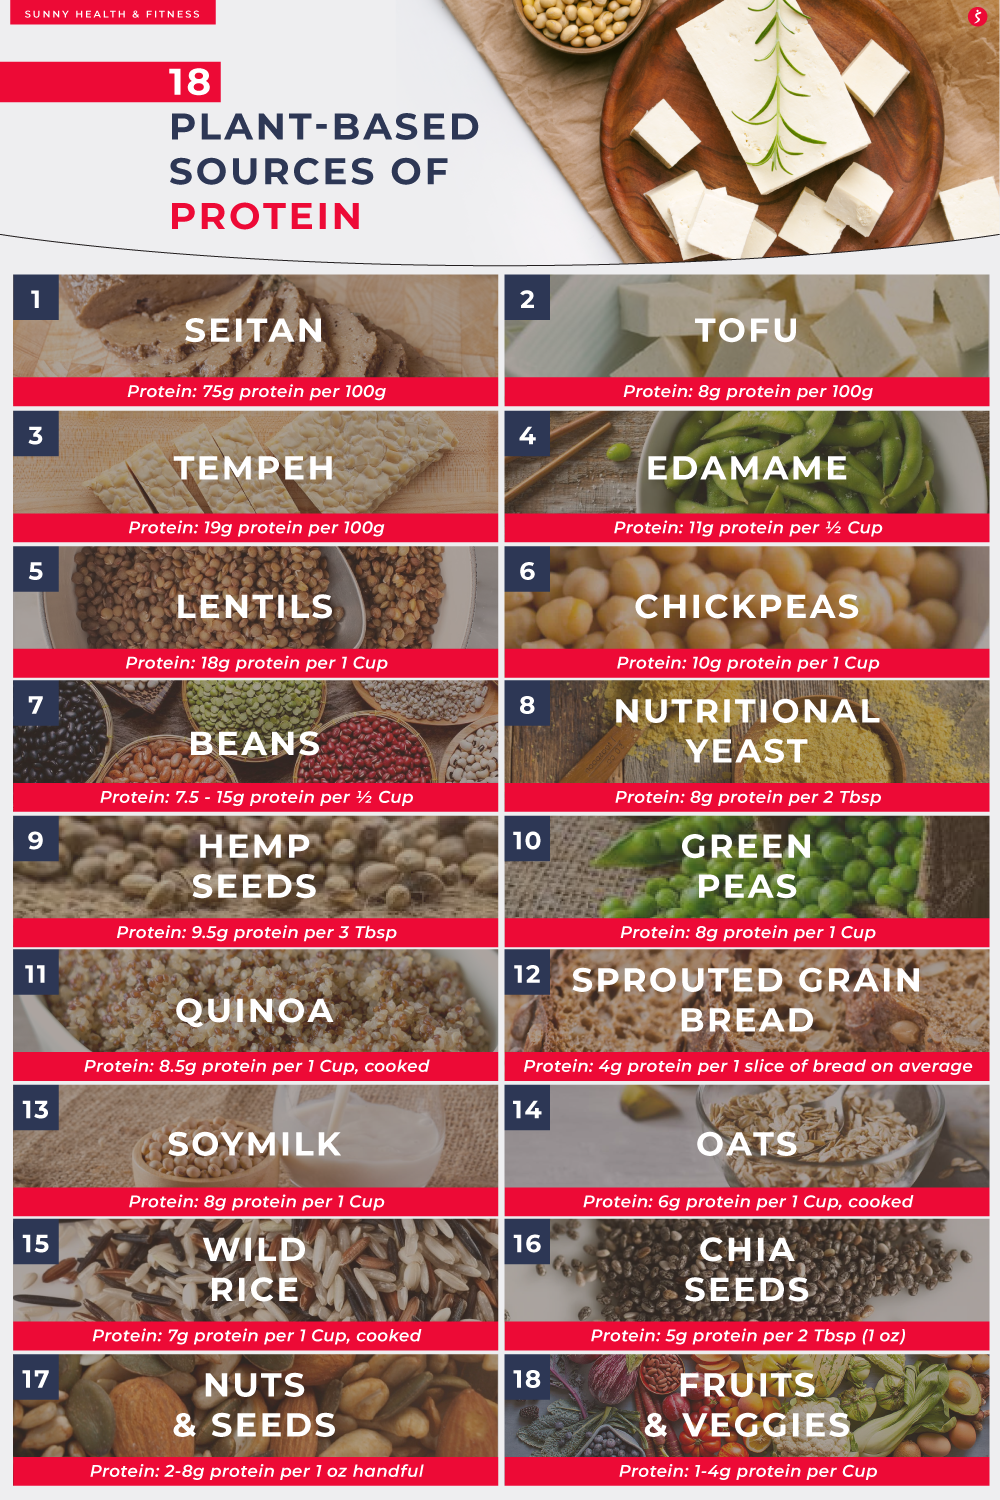 18 Plant-based Sources of Protein Infographic